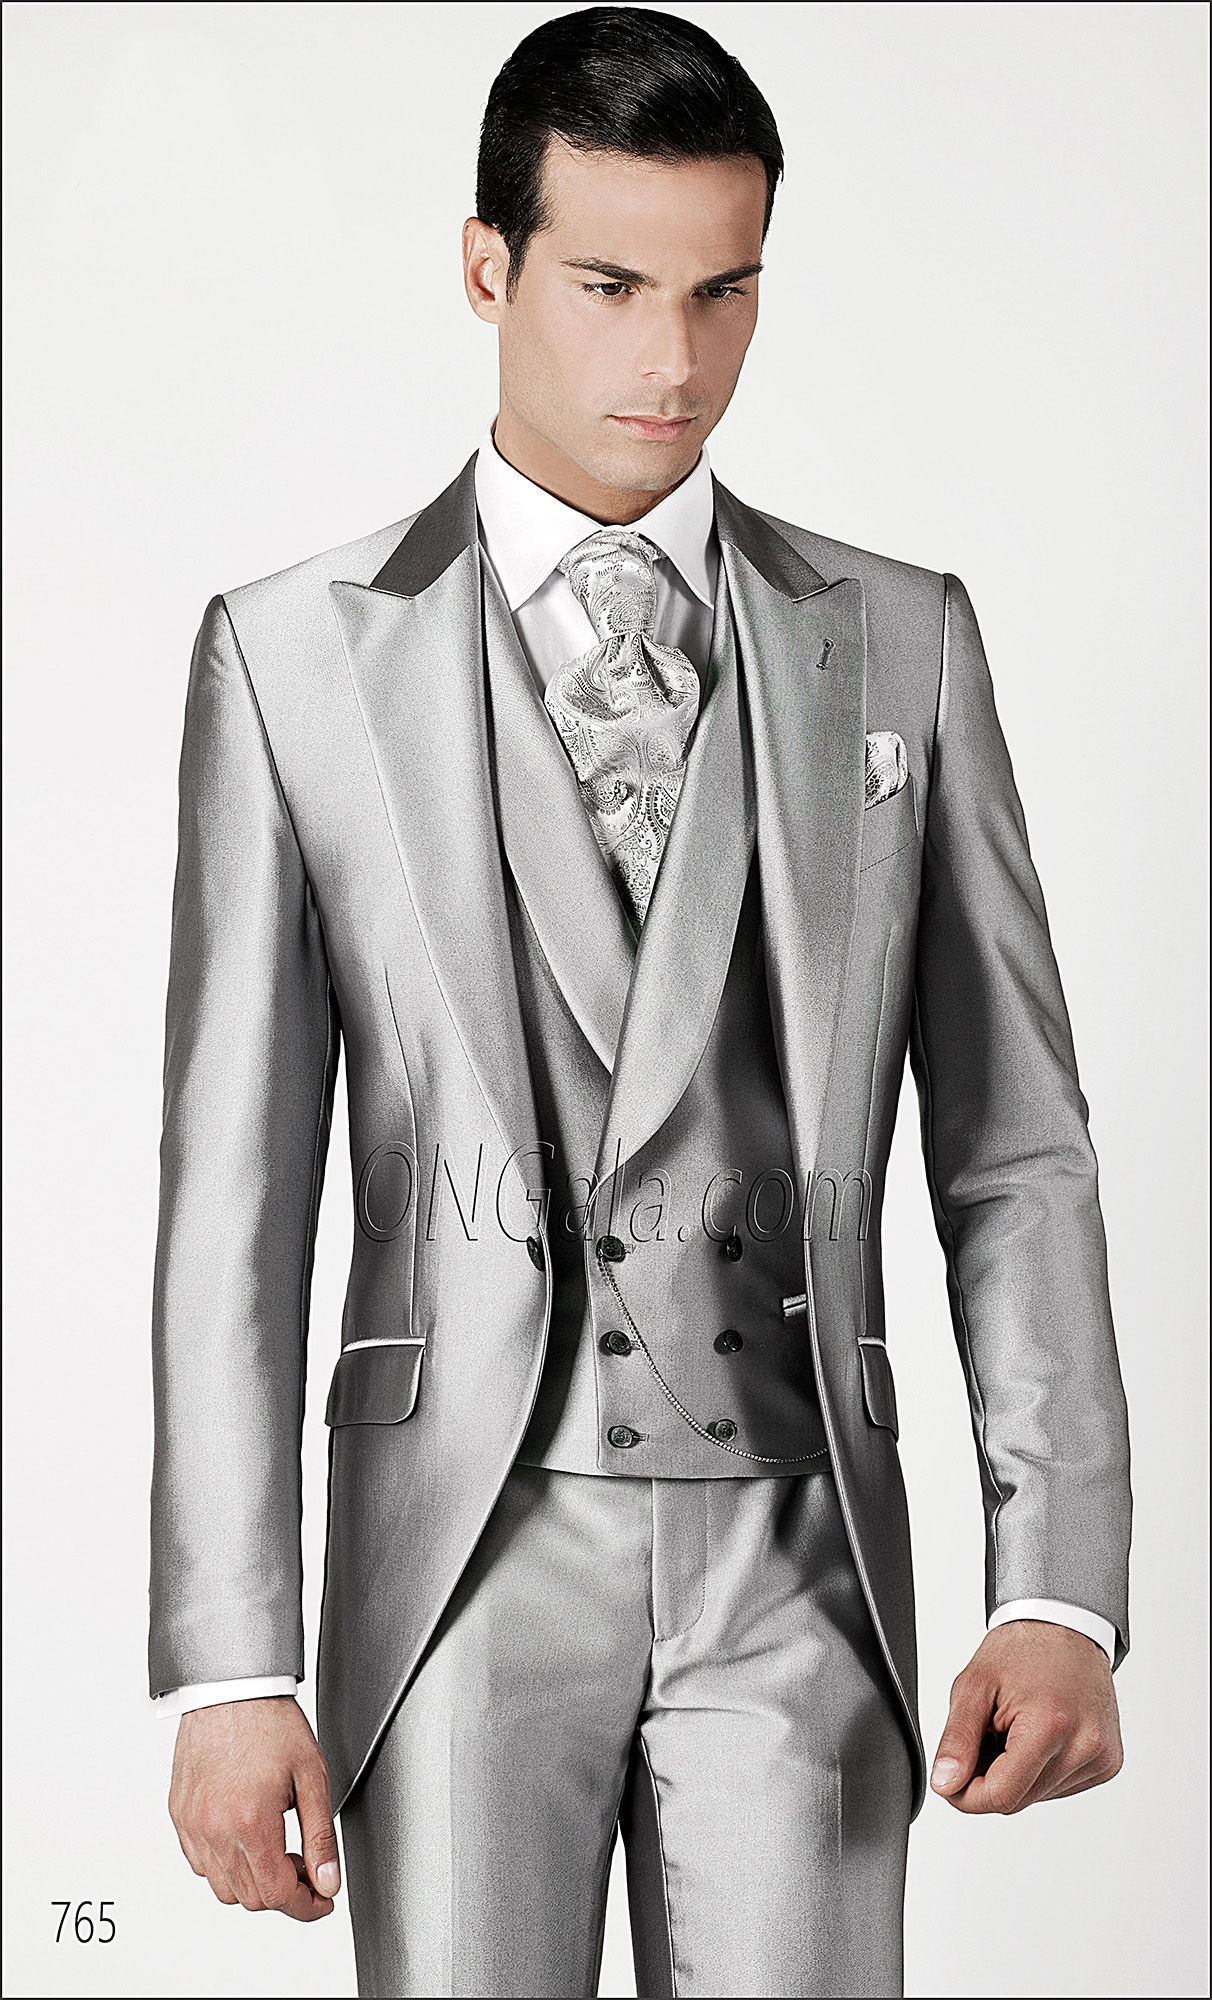 Awesome Wedding Suit For Groom Gallery - Styles & Ideas 2018 ...